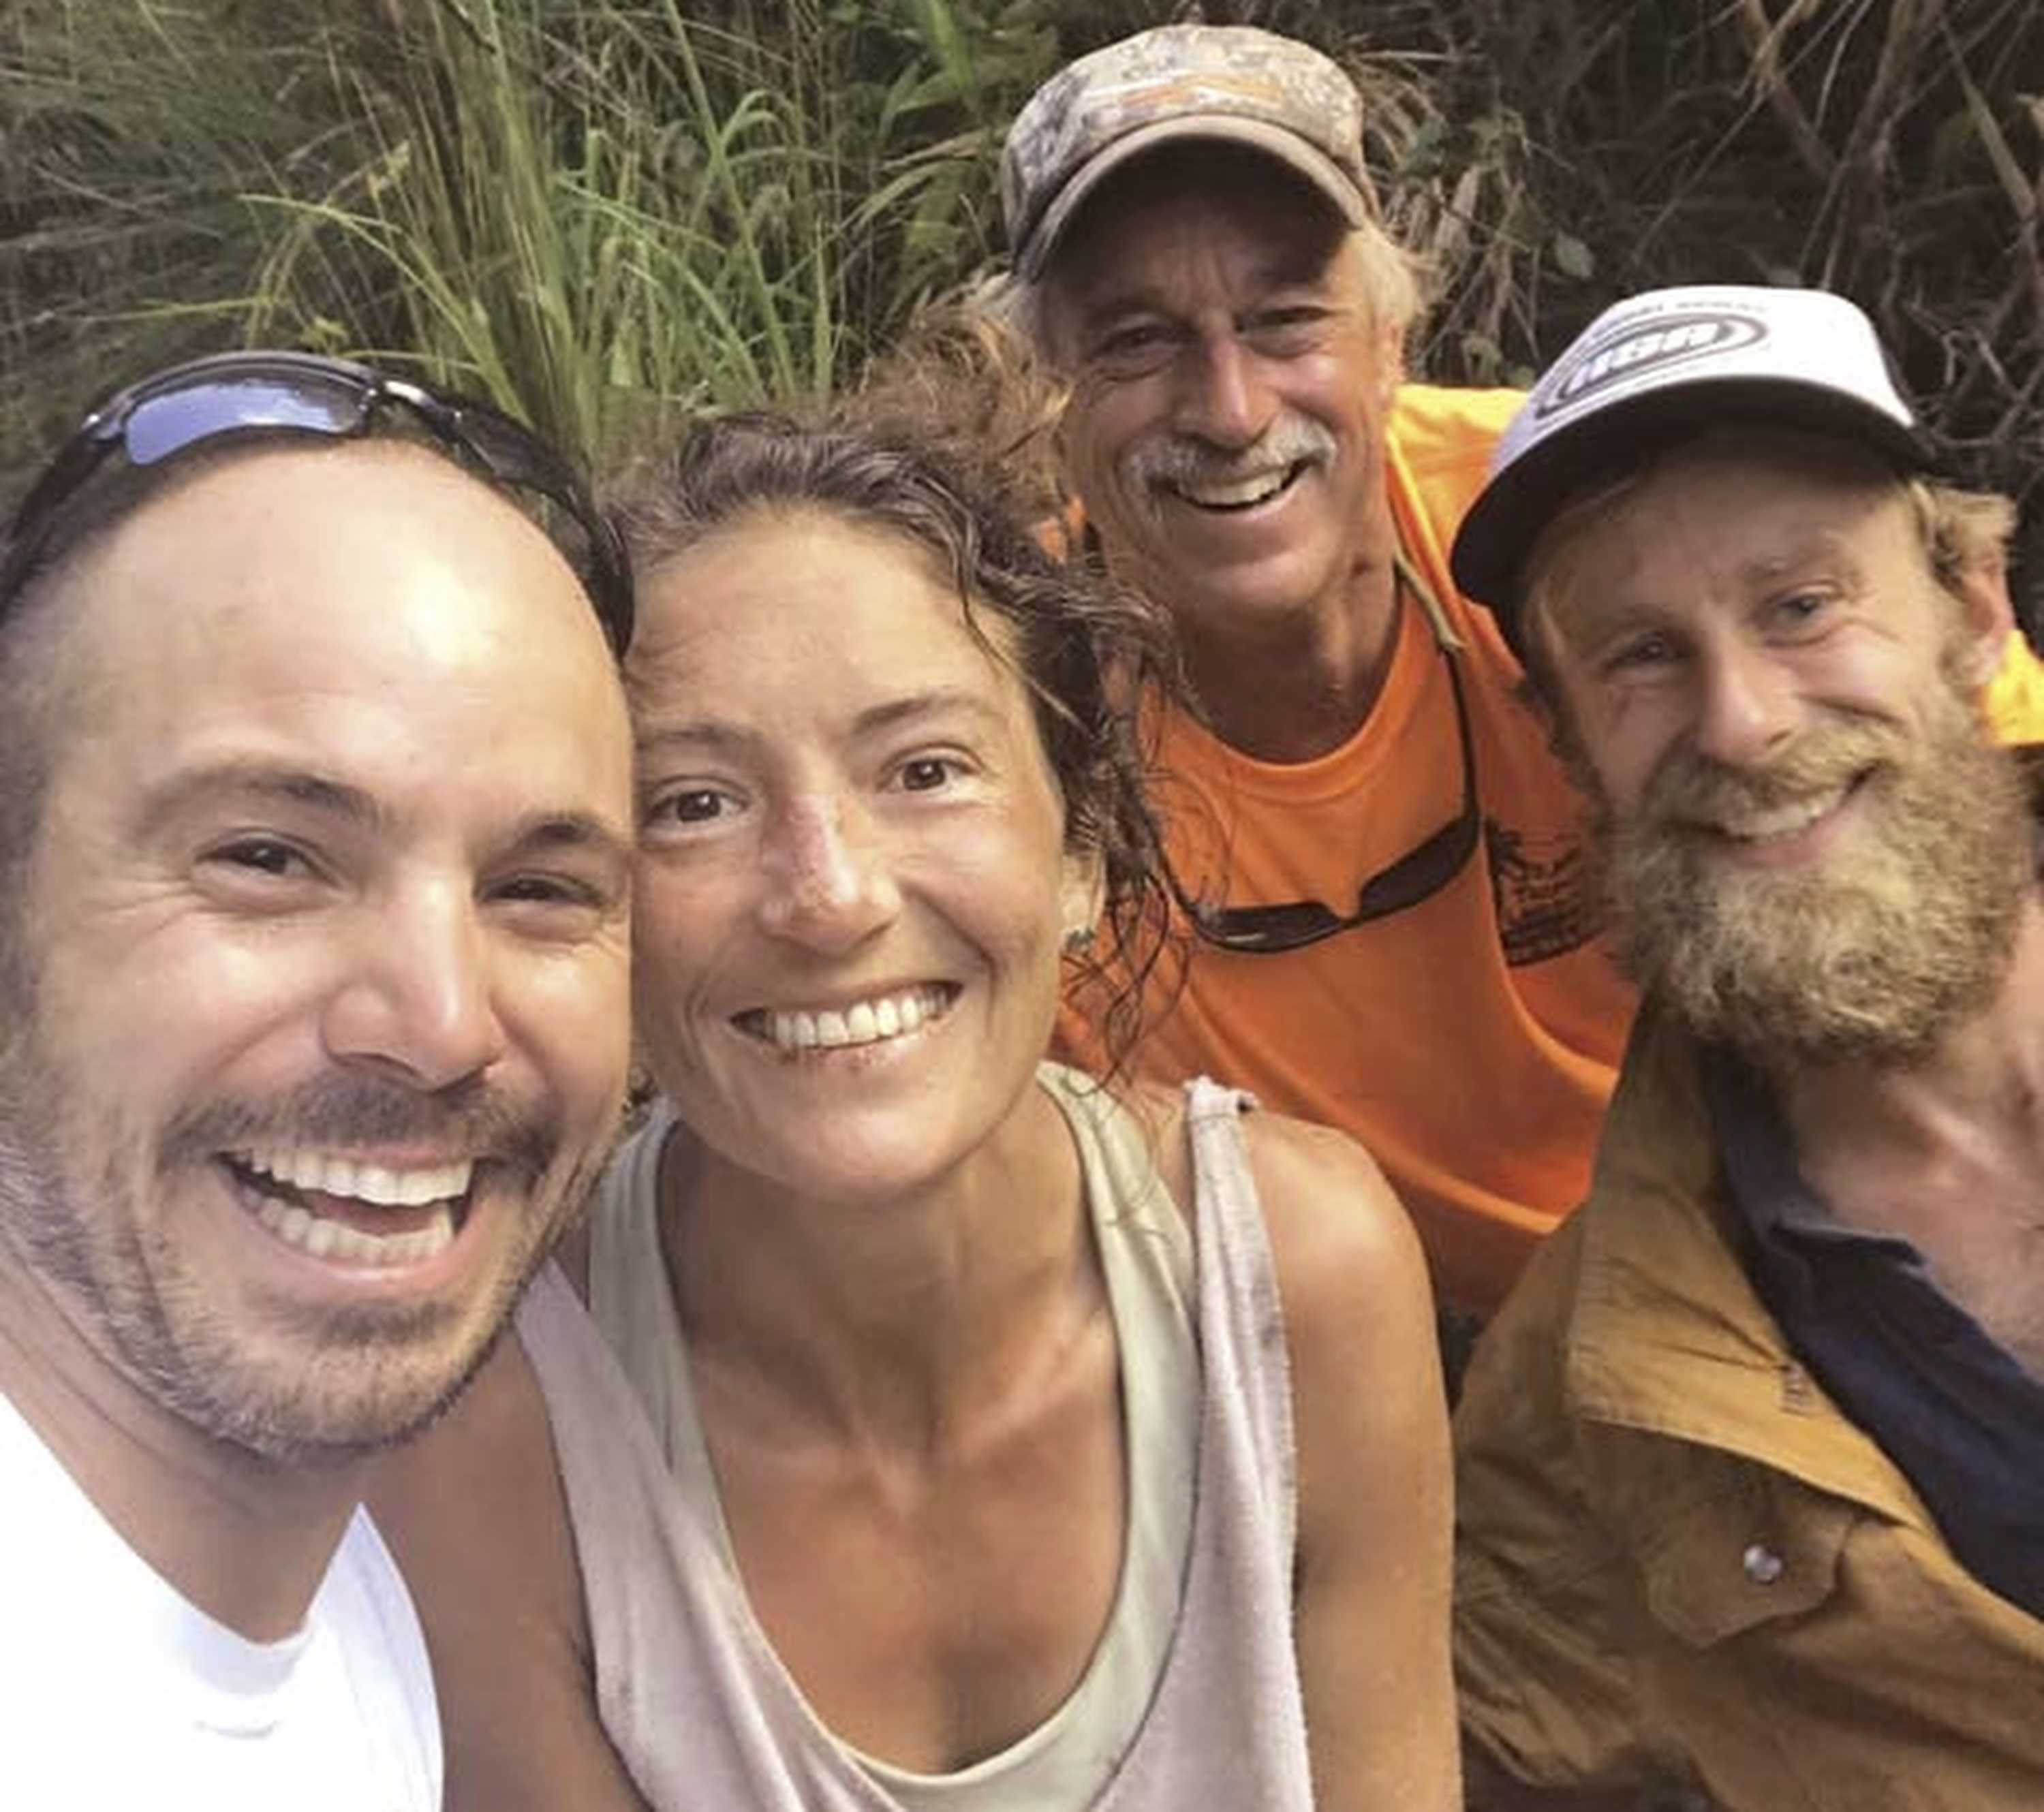 Hawaii woman fell to ground bawling when found in forest